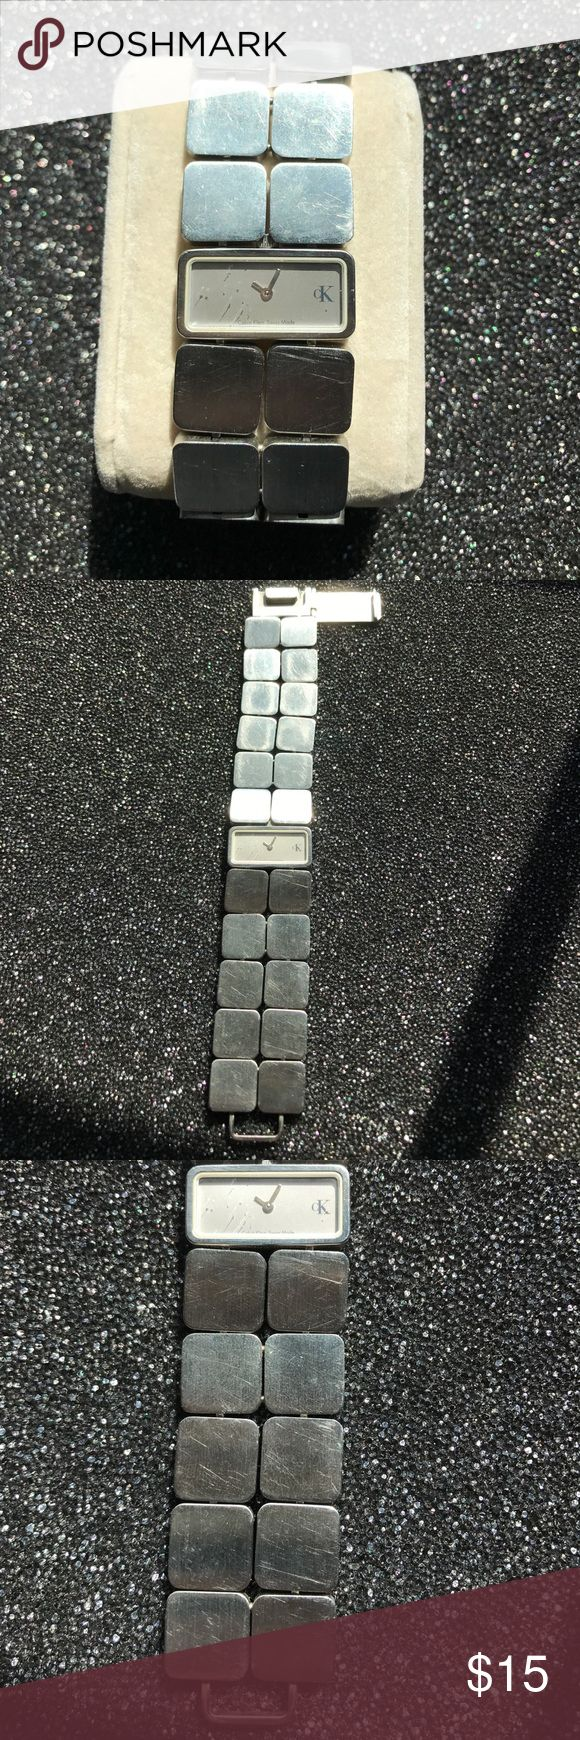 Calvin Klein Bracelet Watch Calvin Klein - Swiss Made - All Stainless Steel - Silver-tone Watch. Model K24131. Water resistant 100 feet. Scratched / worn as pictured. Needs replacement battery. Not currently working. Instruction booklet included. Calvin Klein Accessories Watches